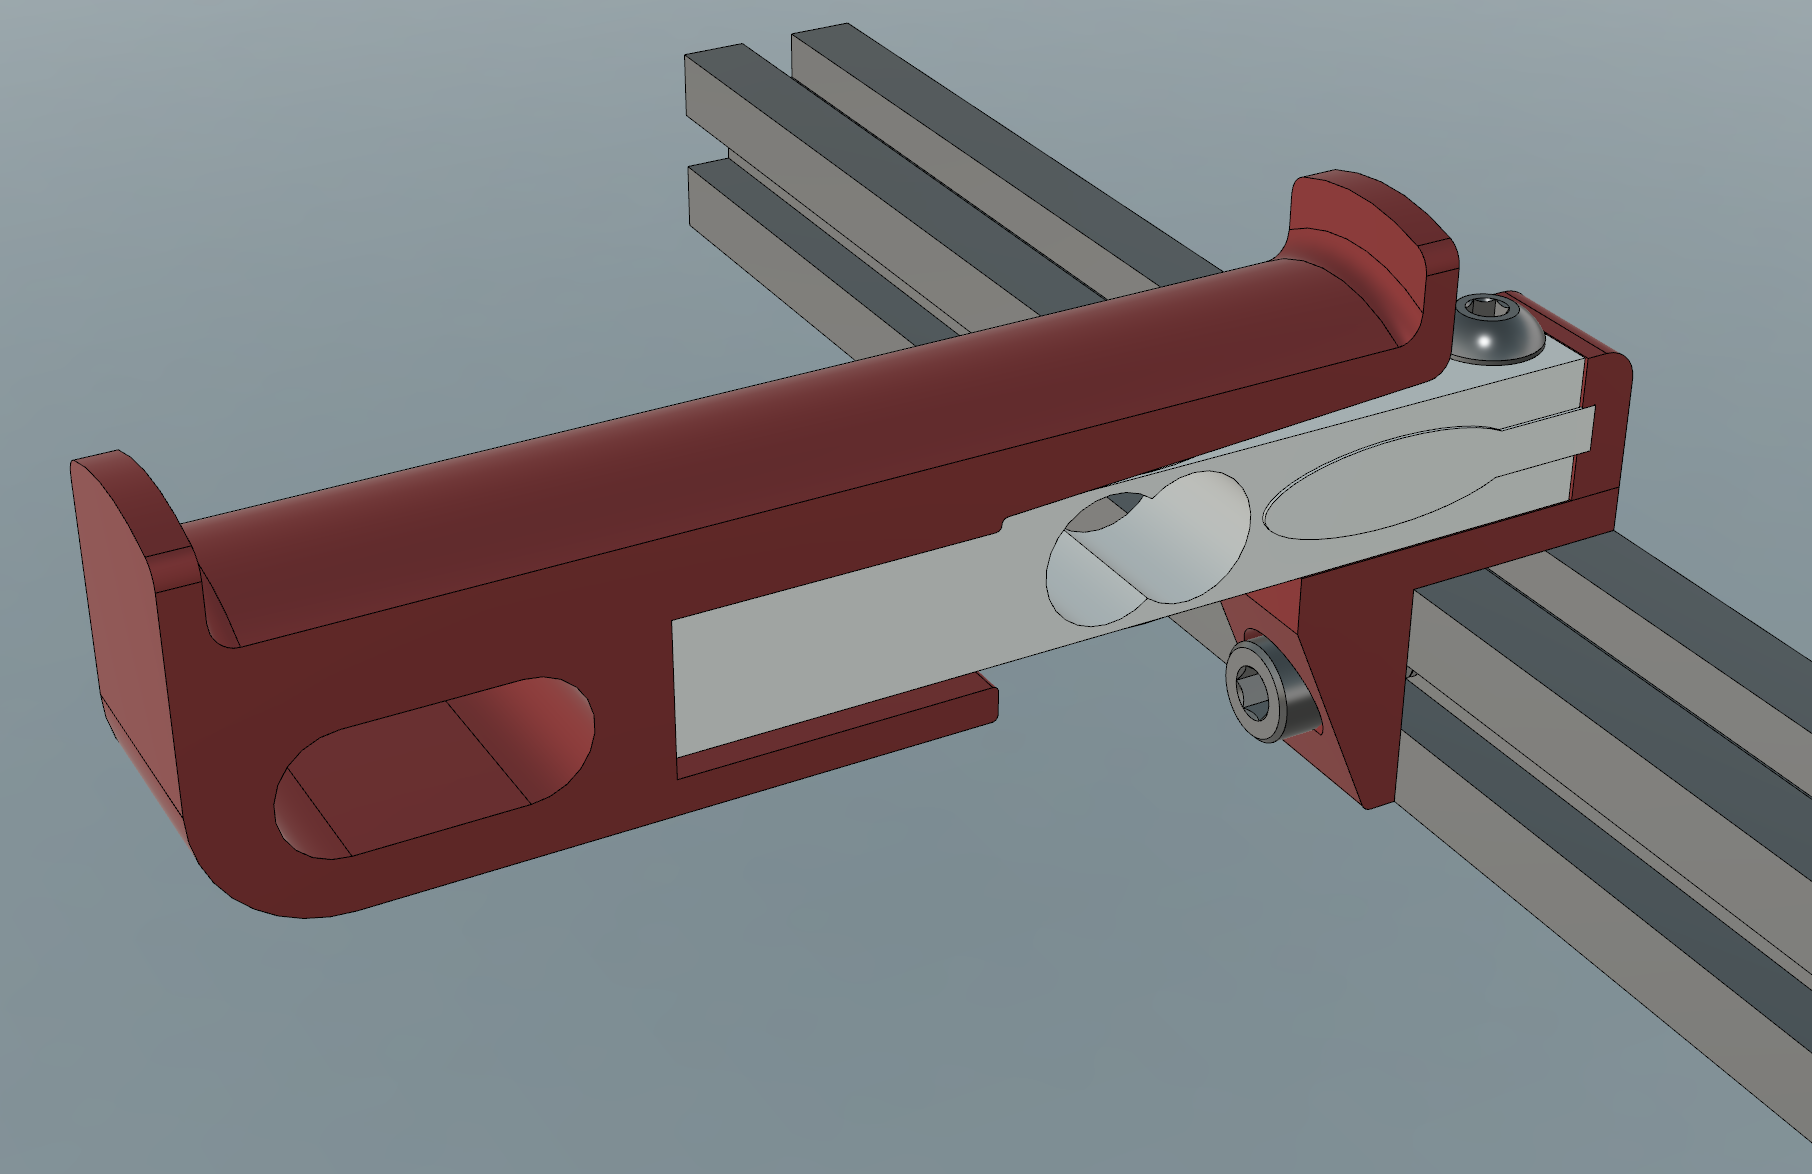 CAD model of the spool holder with integrated load cell